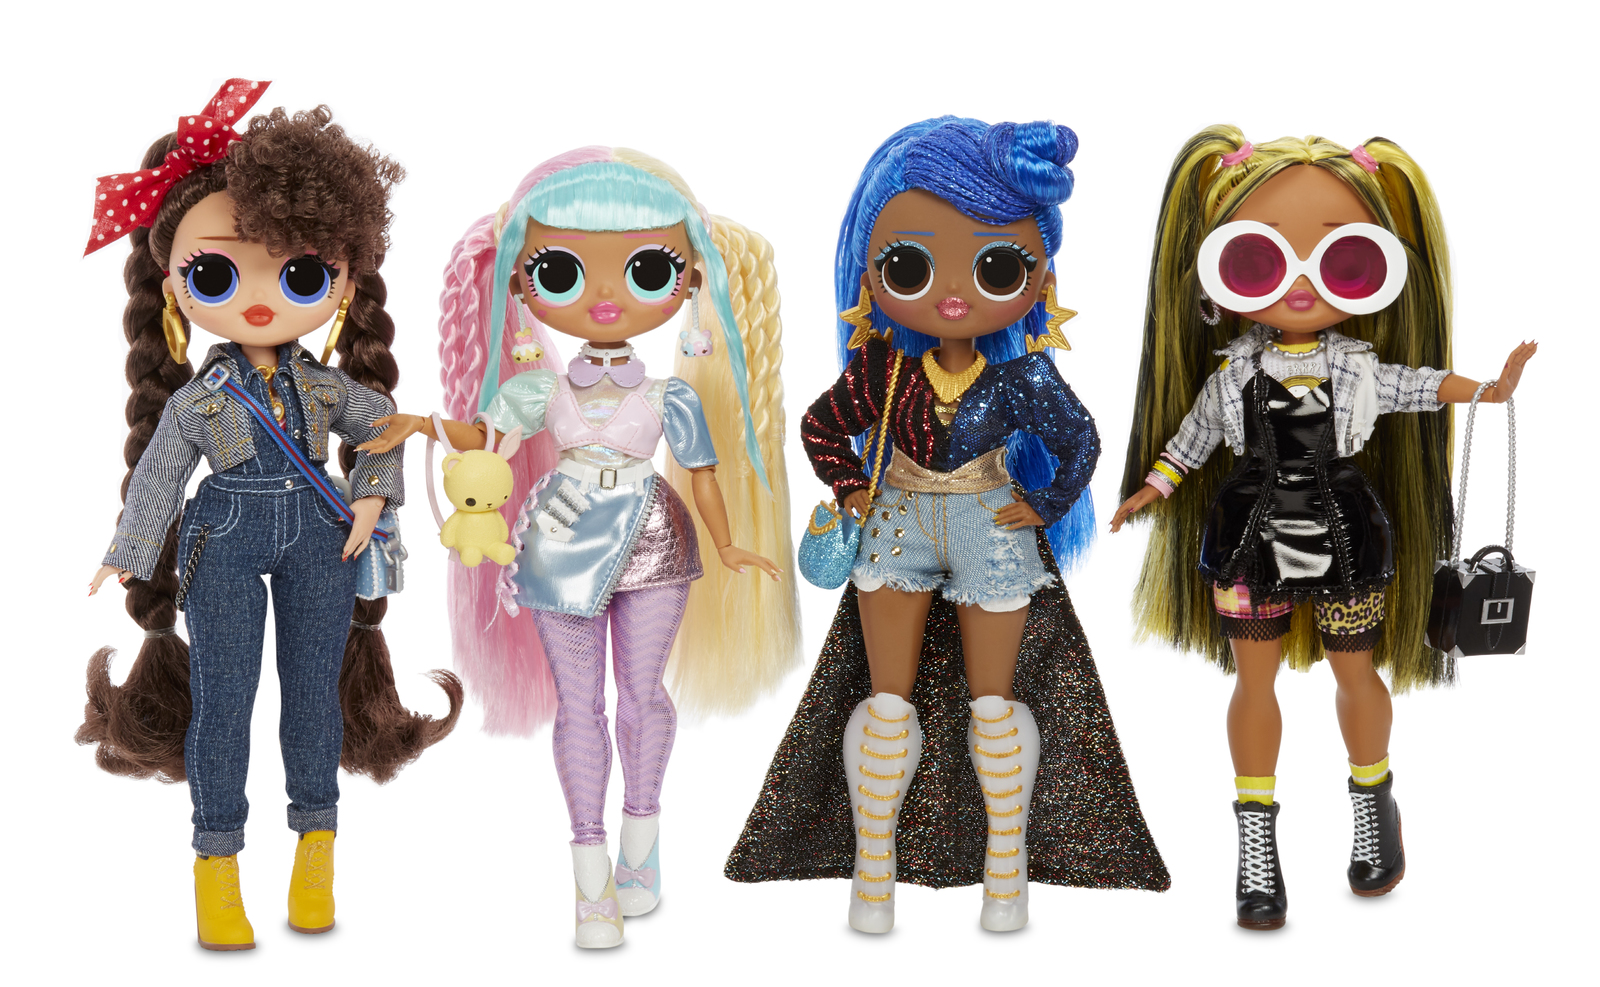 L.O.L. Surprise! O.M.G Fashion Doll - Independent Q image